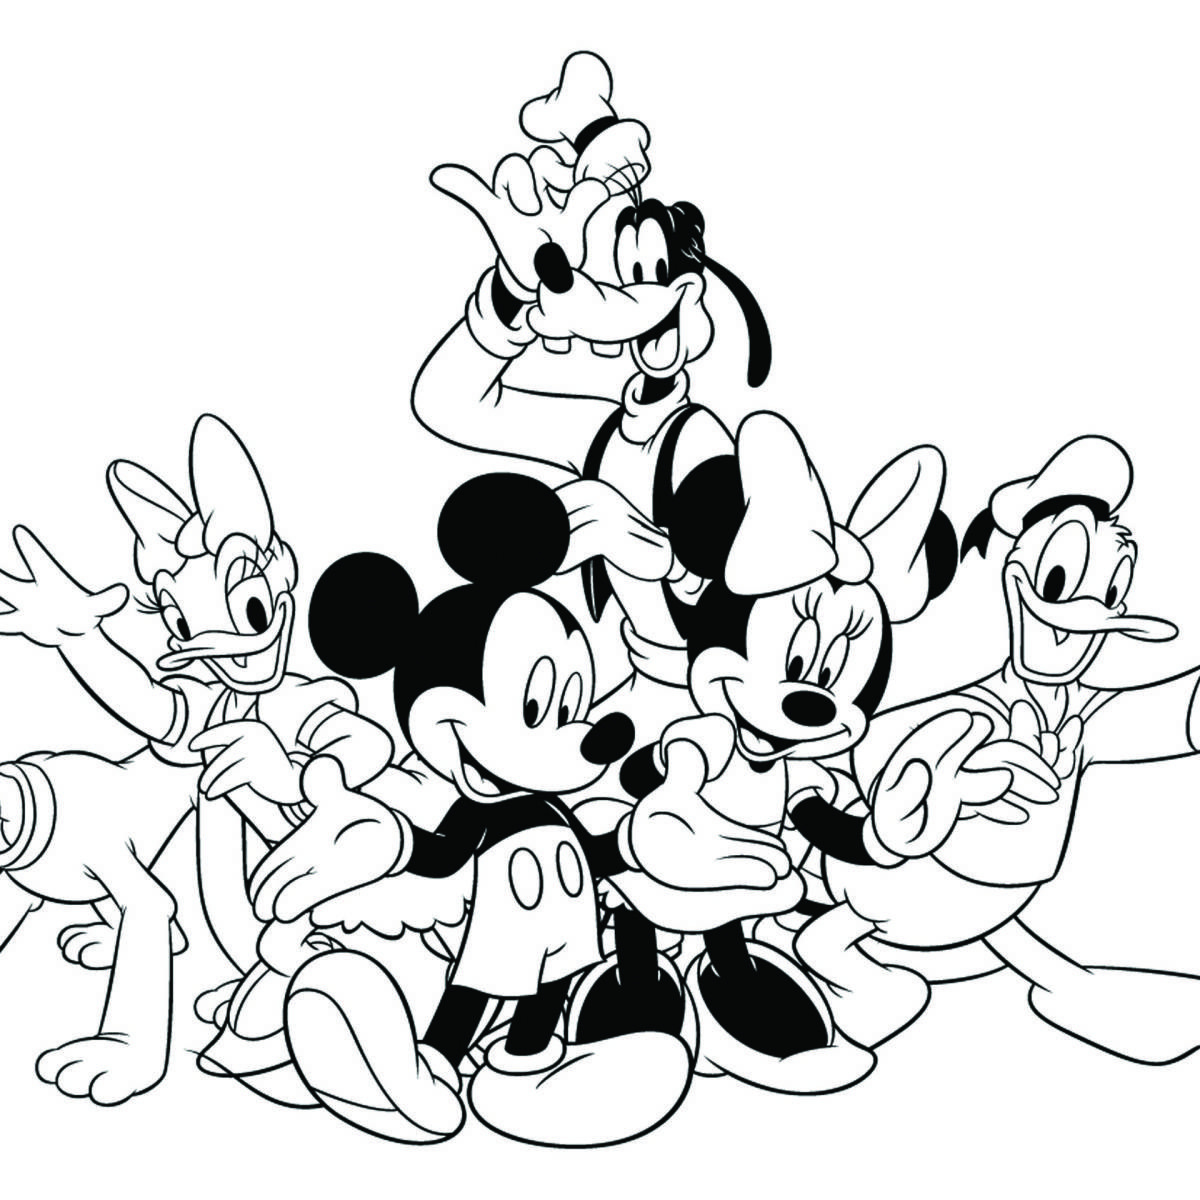 Disney Mickey's Typing Adventure Coloring Page | Disney ...